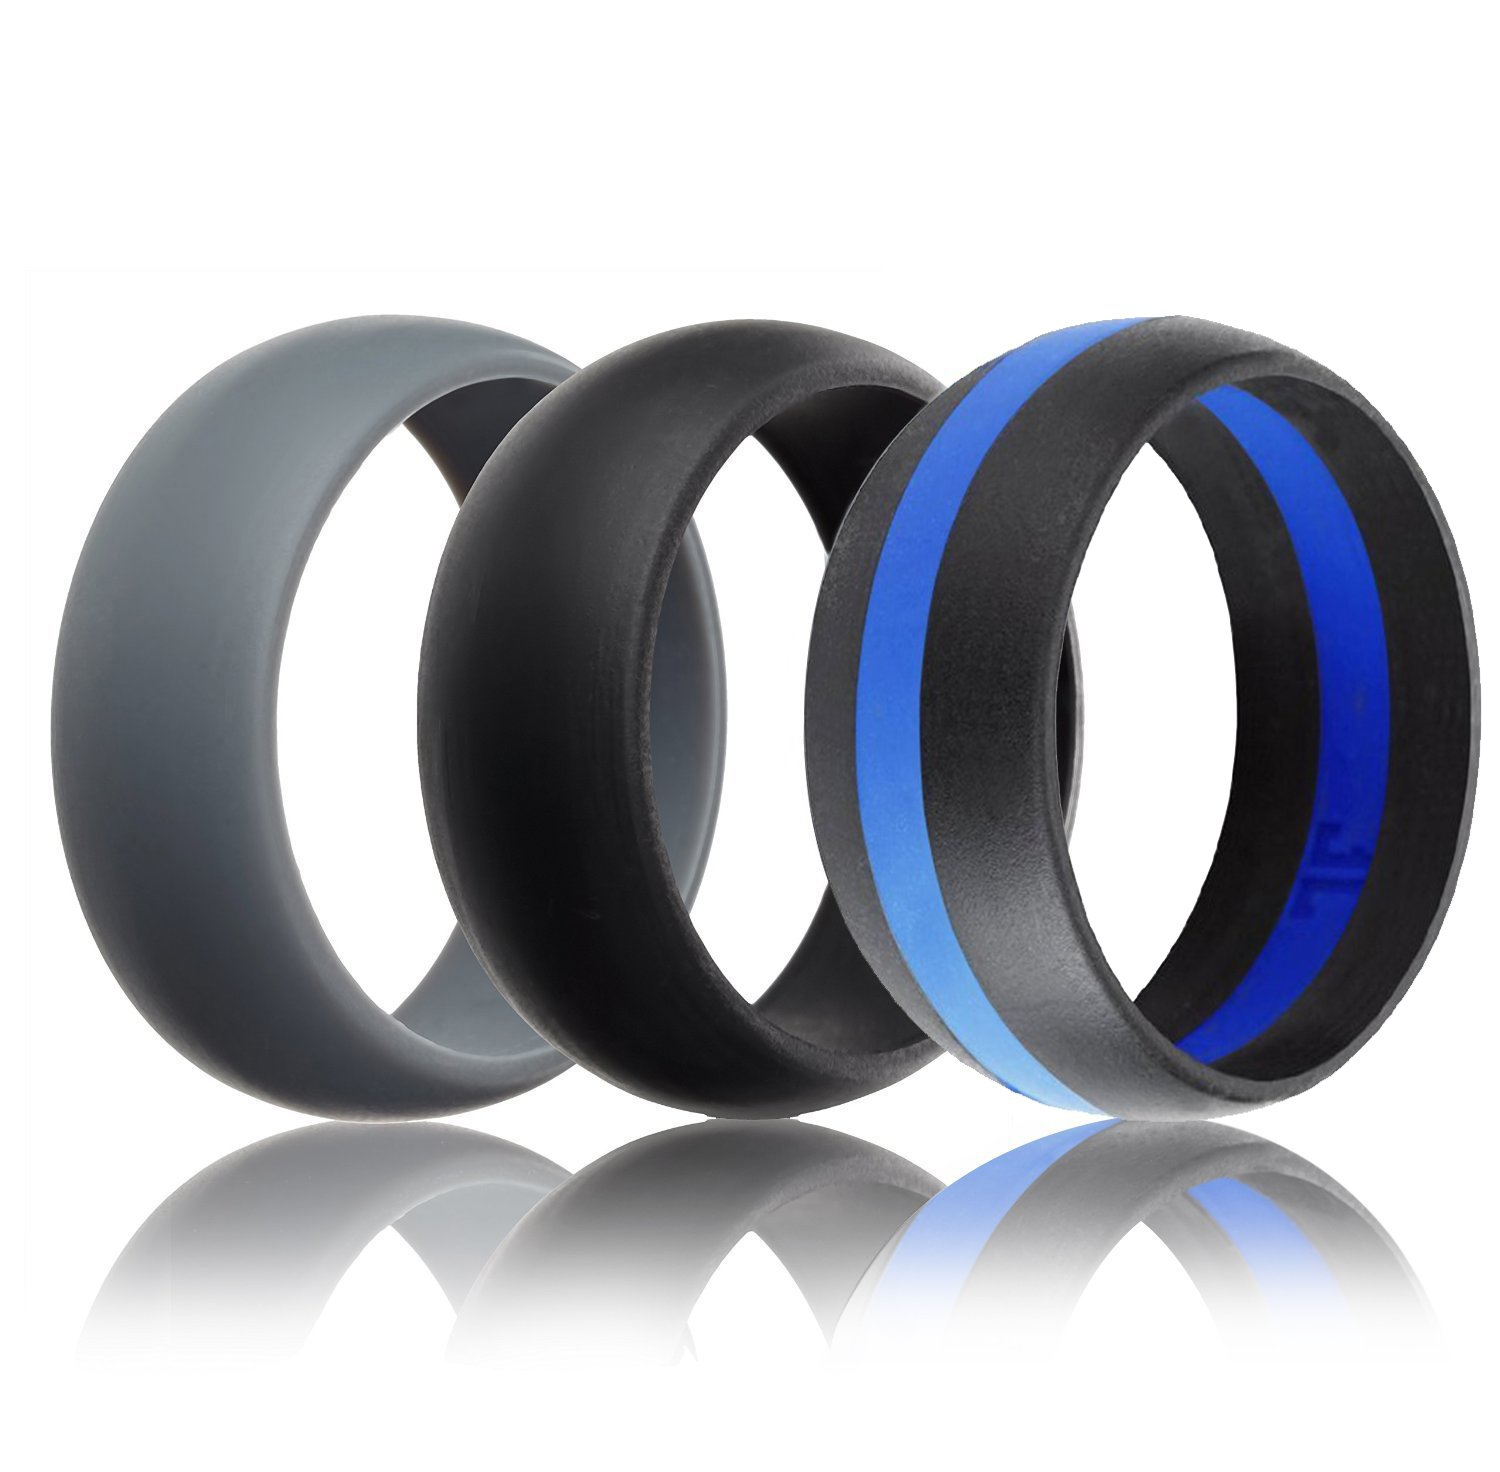 BXS mens silicone wedding band Amazon com Mens Silicone Wedding Ring Wedding Band 3 Rings Pack 8 7mm Wide 2mm Thick Black Grey Black Blue Sports Outdoors